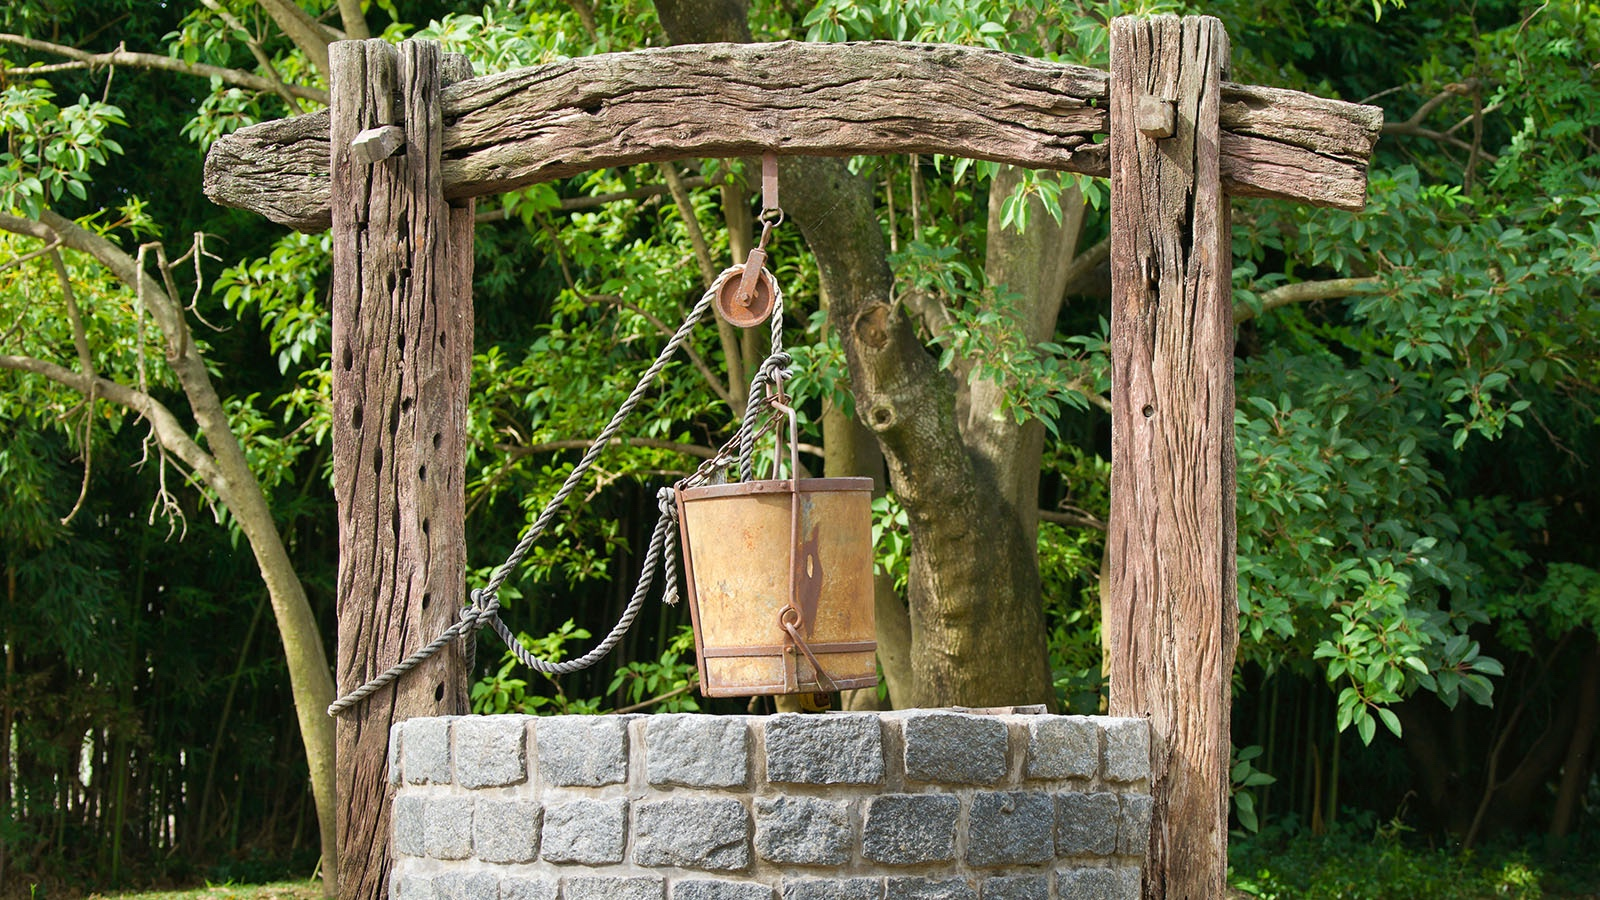 Simple machine pulley well